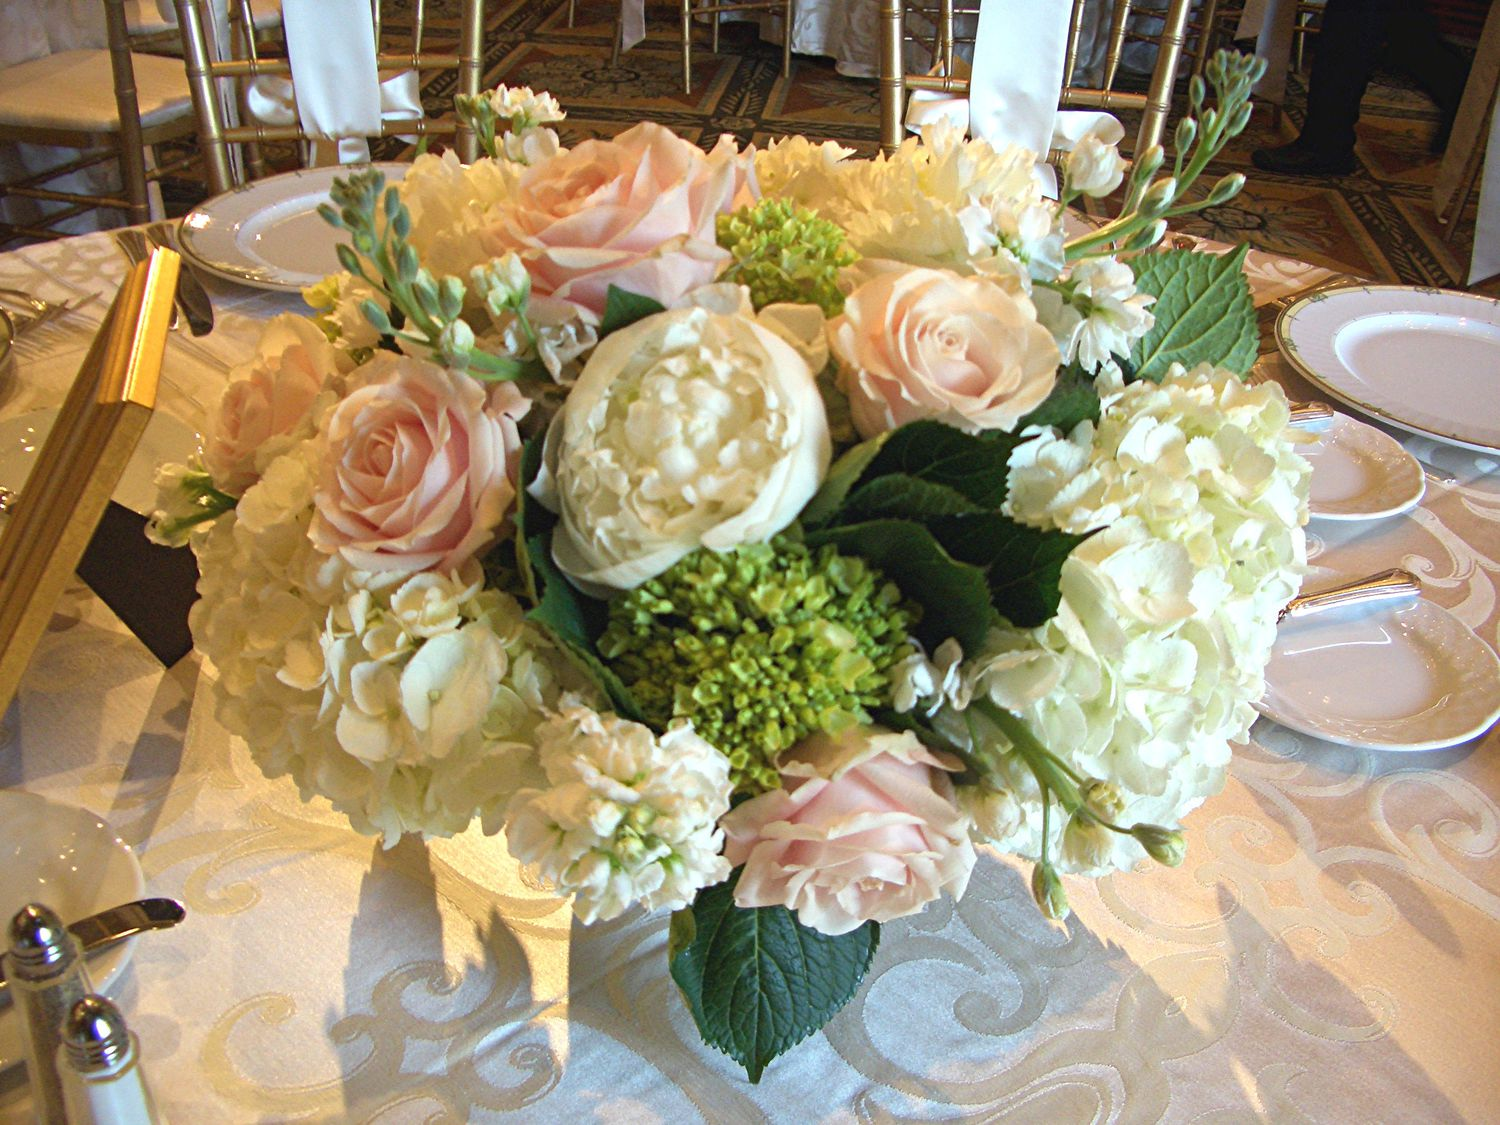 Wedding Reception Flowers, Centerpieces, Decorations